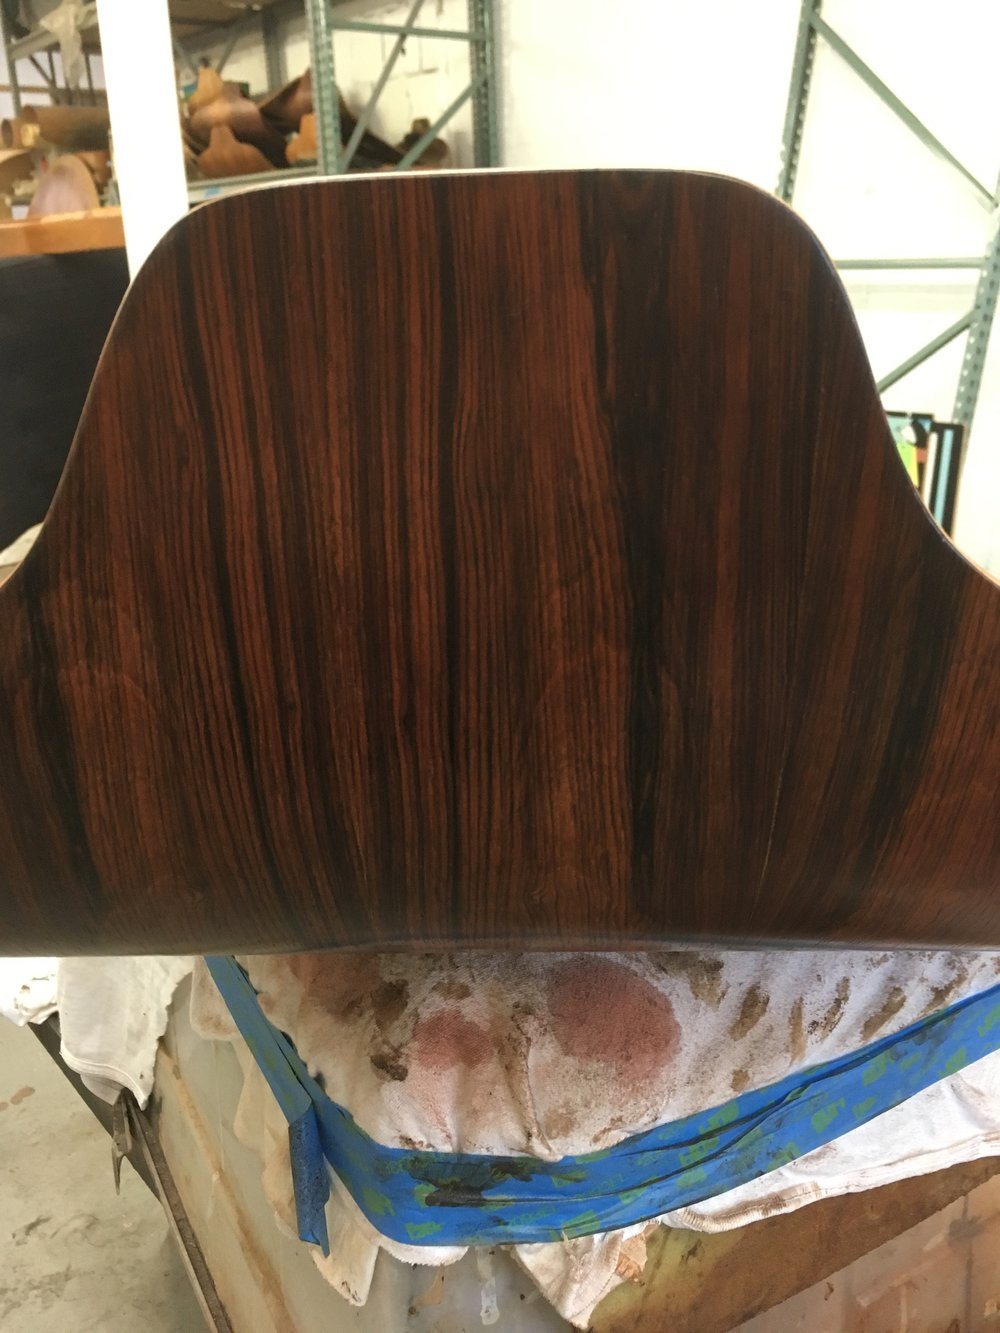 Repair of holes on an Eames Lounge